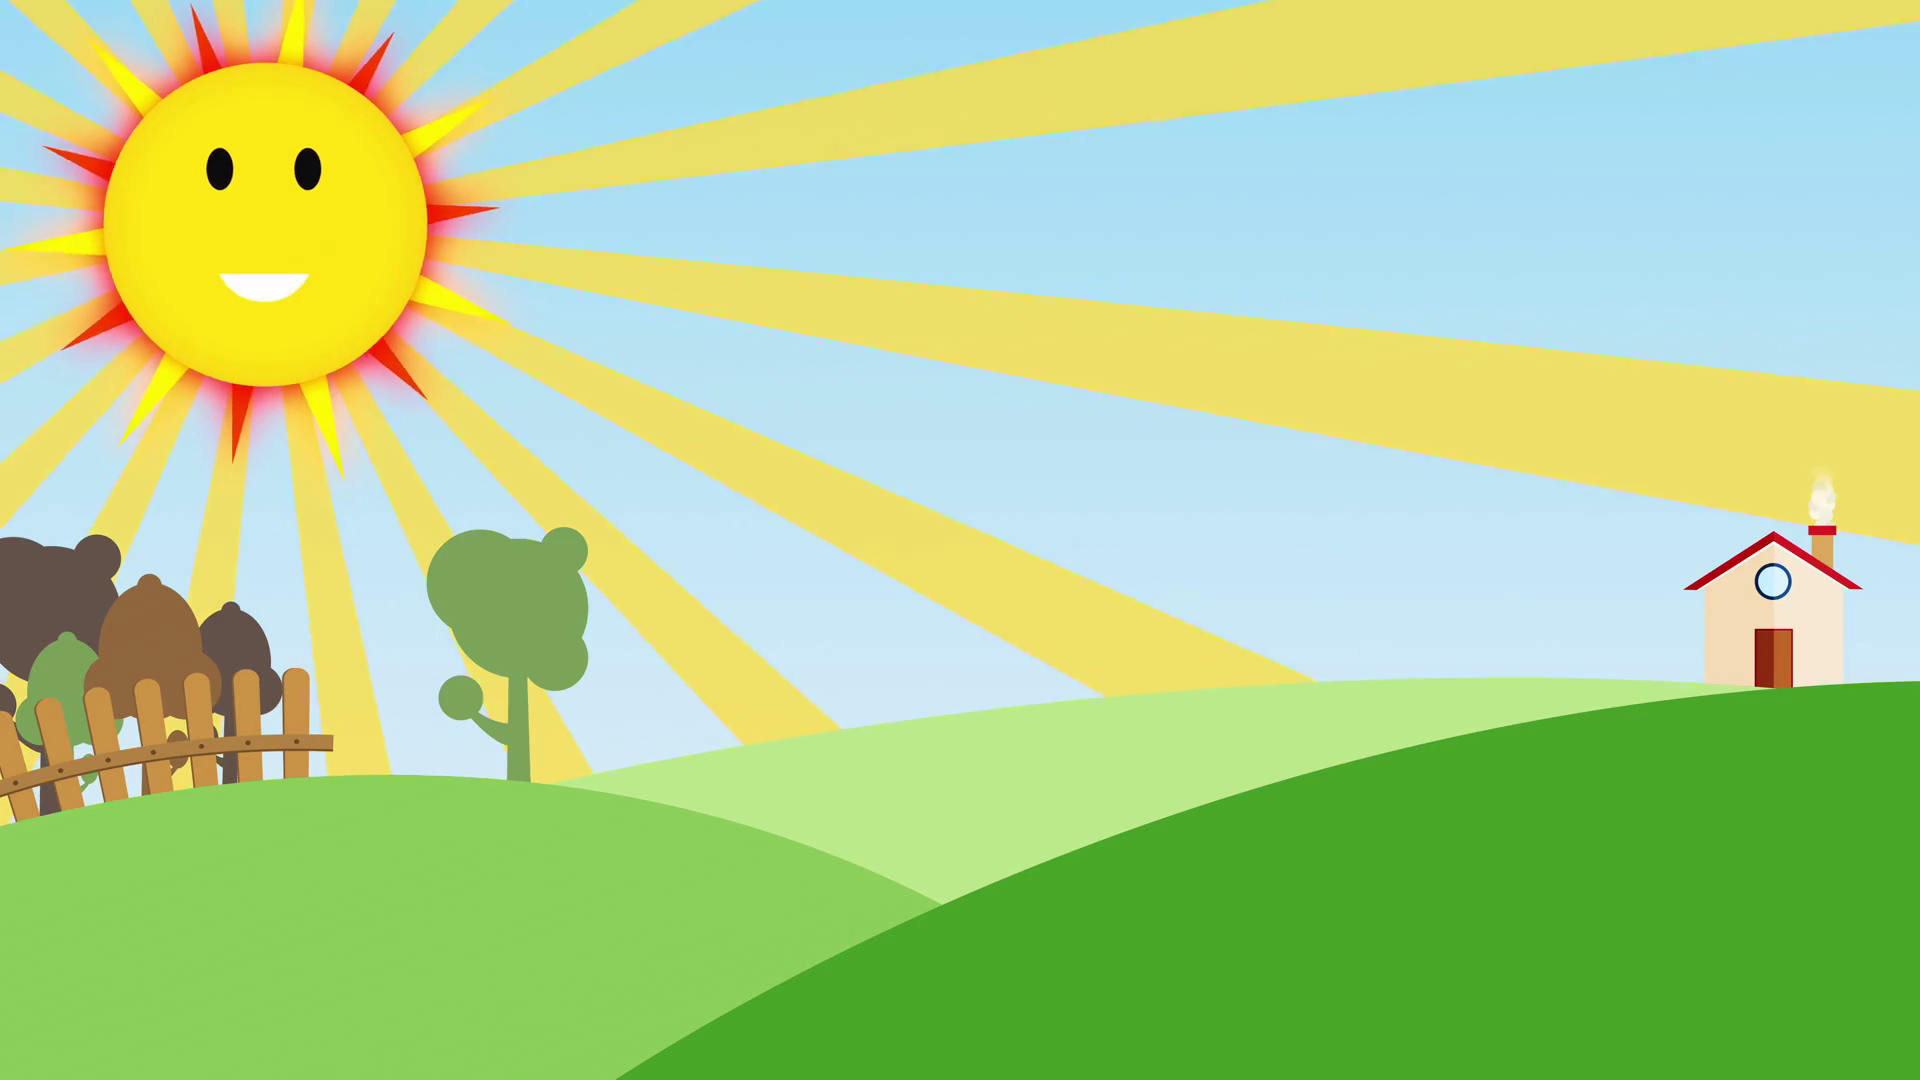 nature-background -for-kids-with-smiling-sun-seamless-loop-nice-cartoon-animation-of-colorful- farm-background-seamless-loop-with-space-for-your-text-or- PlusPng.com  - Barn Background PNG